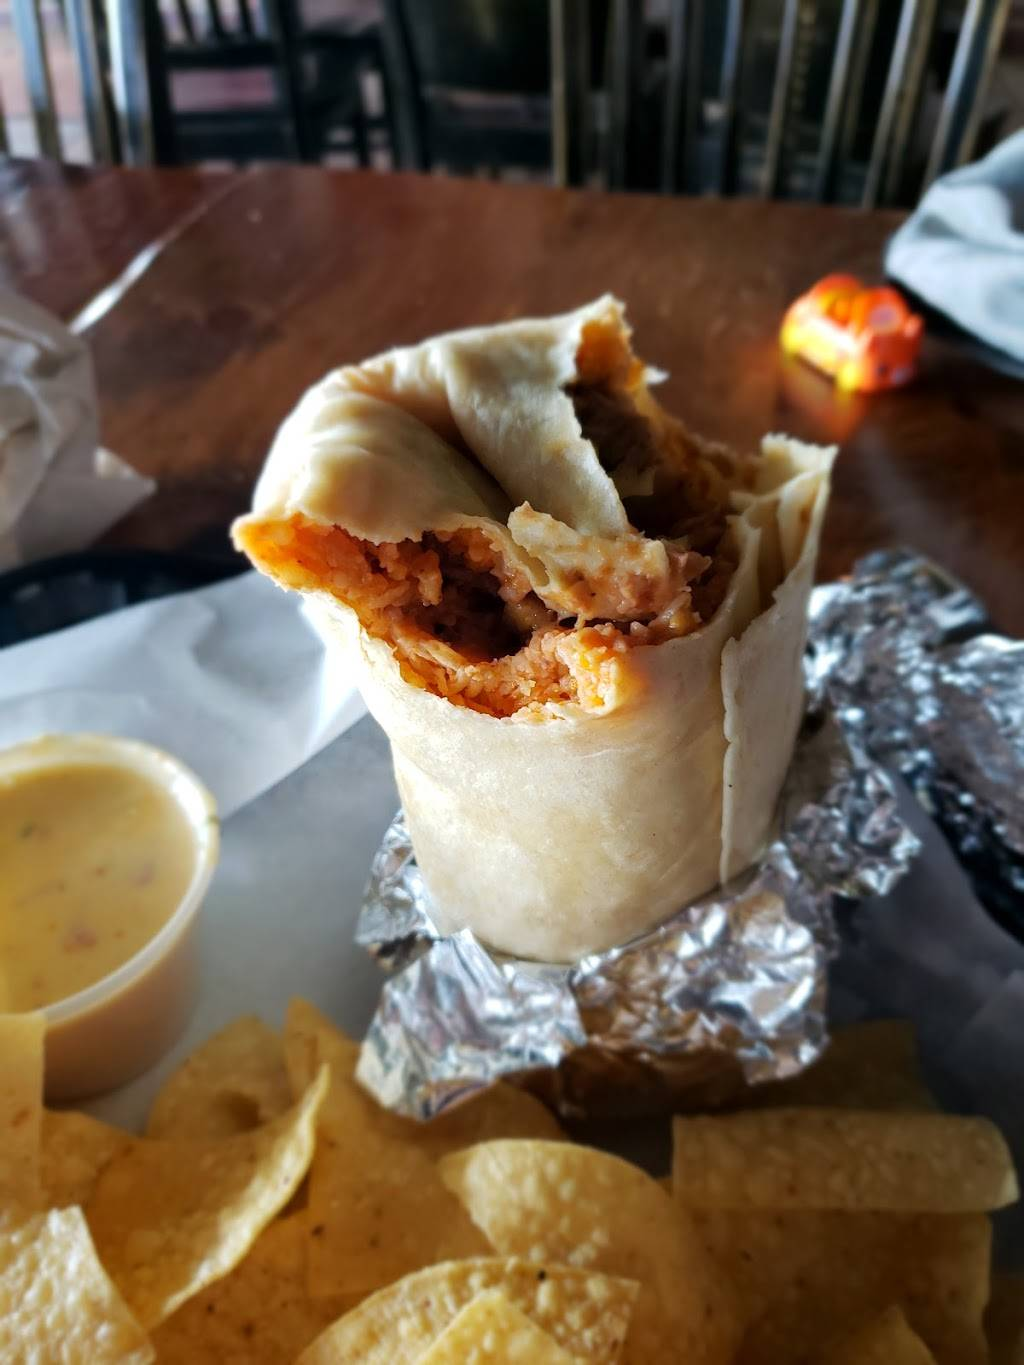 Freebirds World Burrito | restaurant | 21923 Katy Fwy, Katy, TX 77450, USA | 2815743704 OR +1 281-574-3704